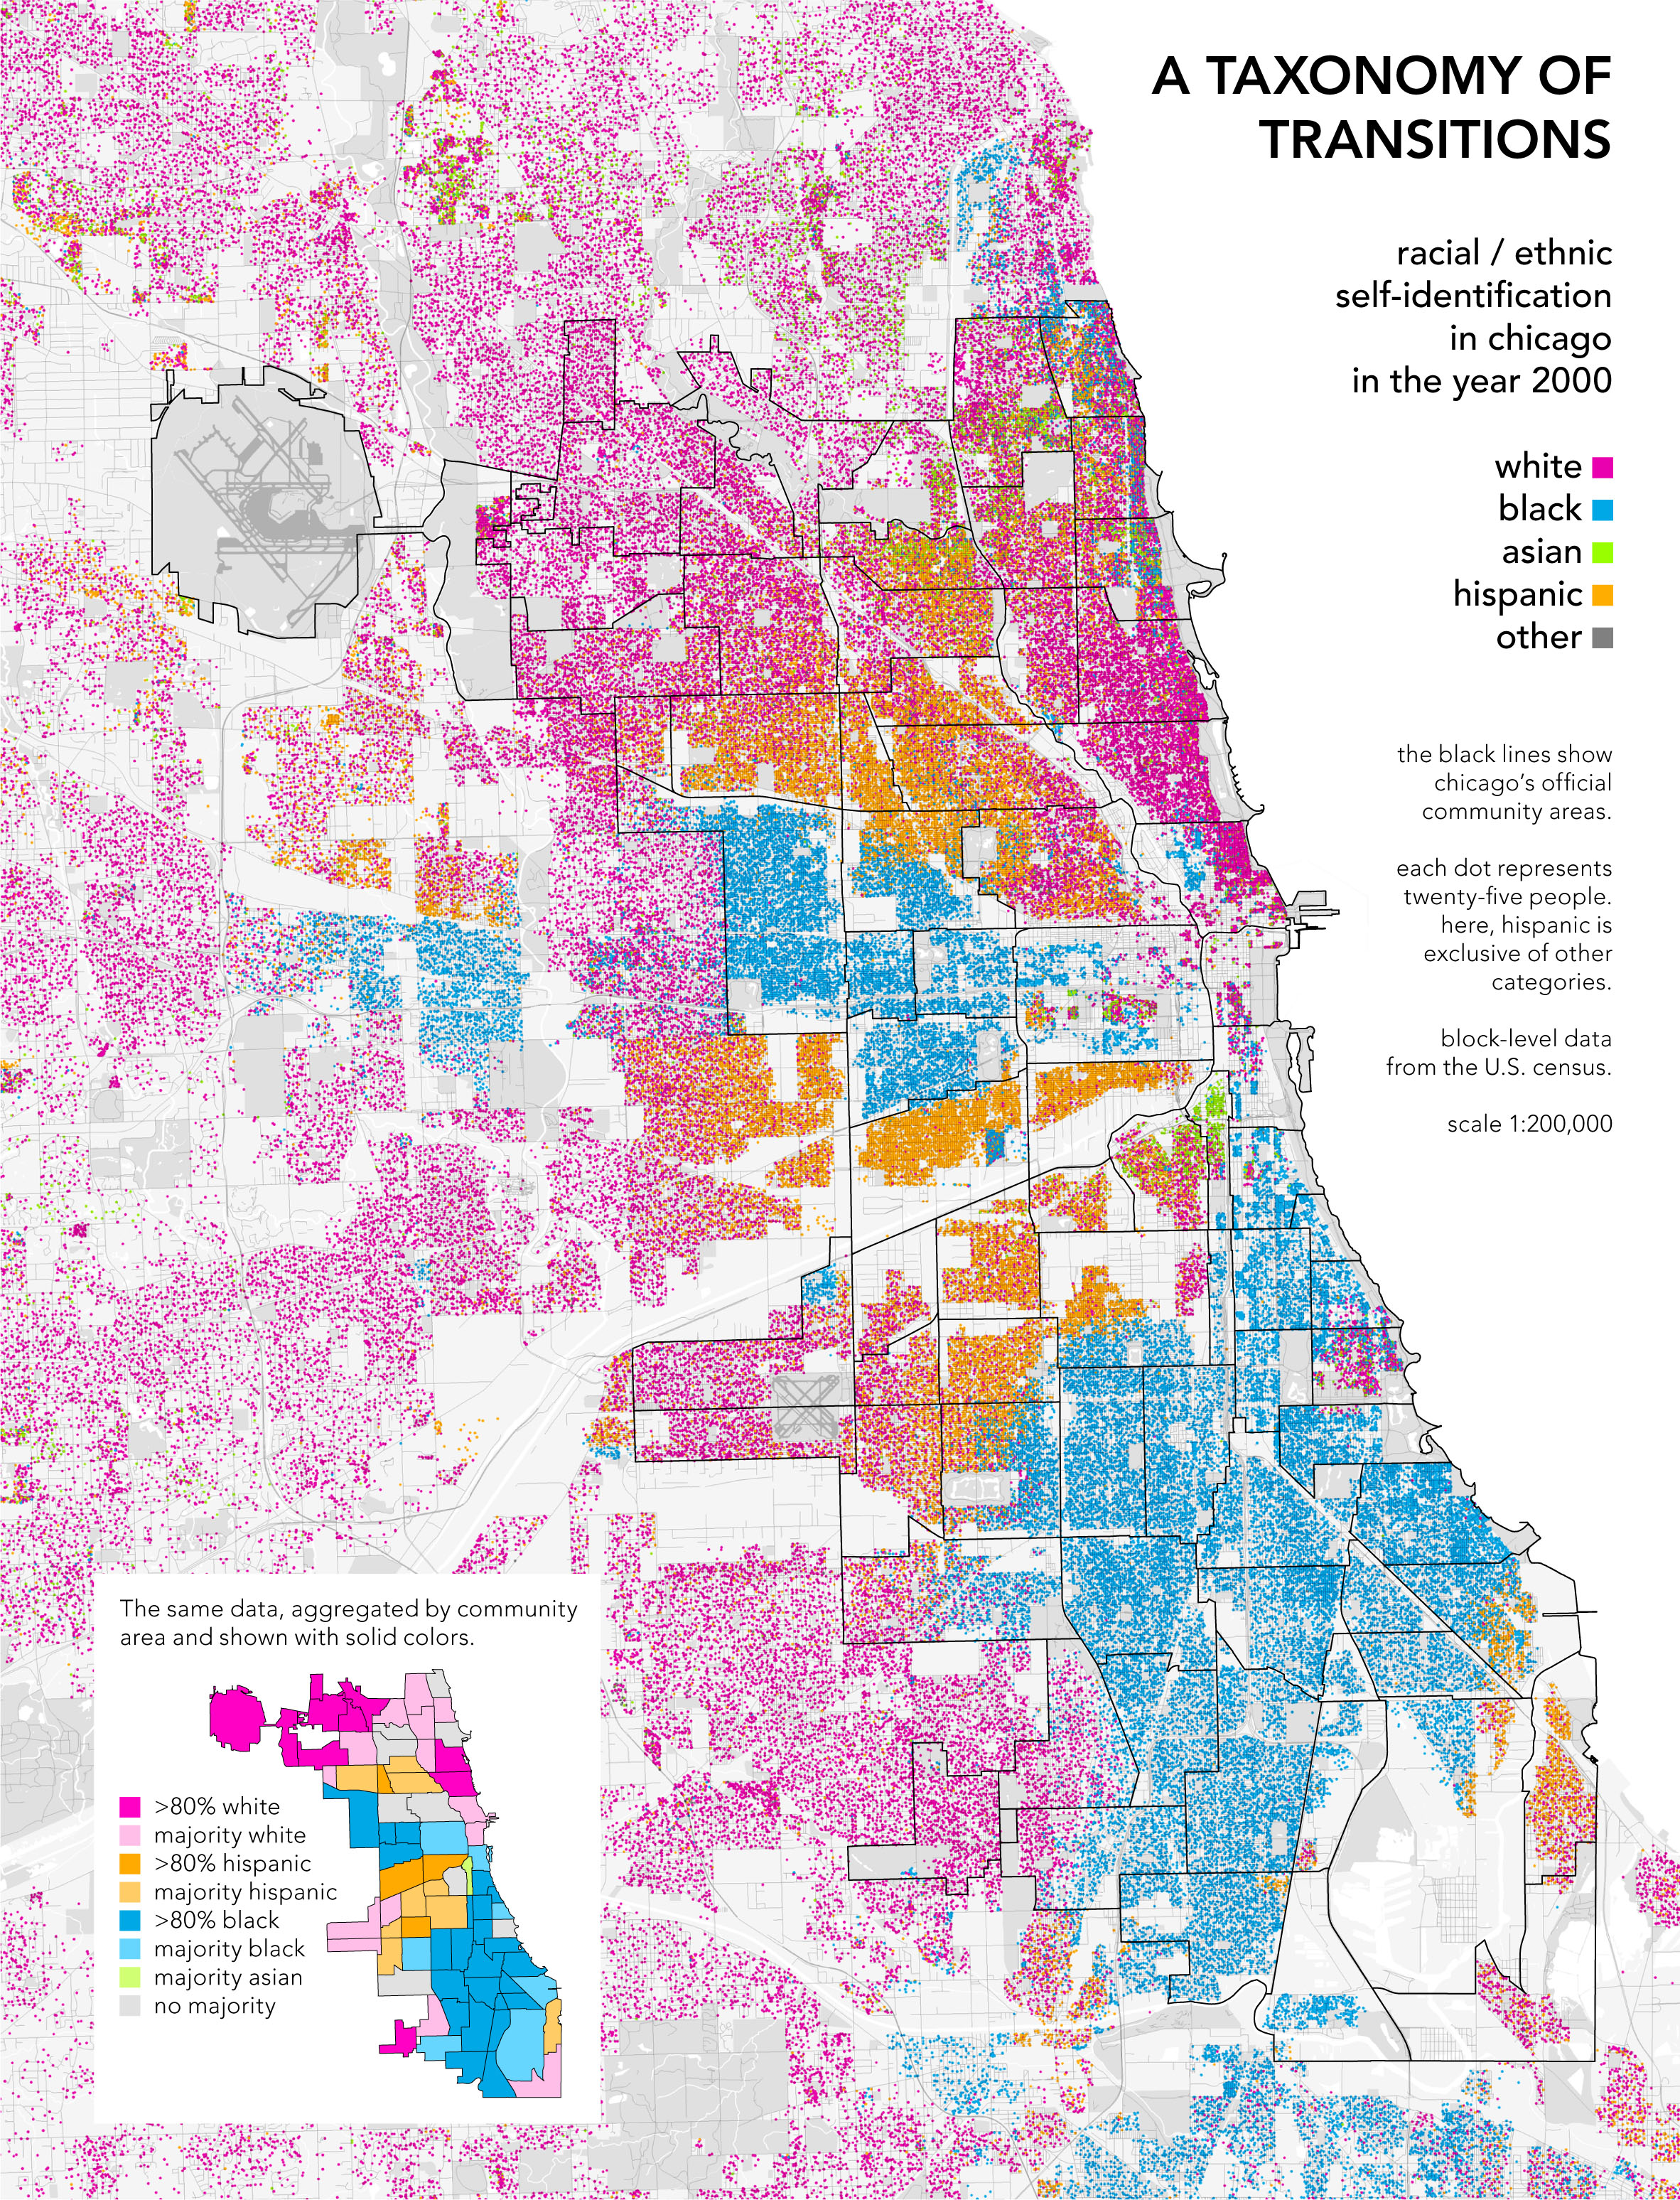 radicalcartography Nyc Census Ethnic Distribution Map on census map charlotte, united states ethnic group maps, census 2012 data ethnic groups, china ethnic maps, census 2010 demographic profiles, ethnicities us maps,